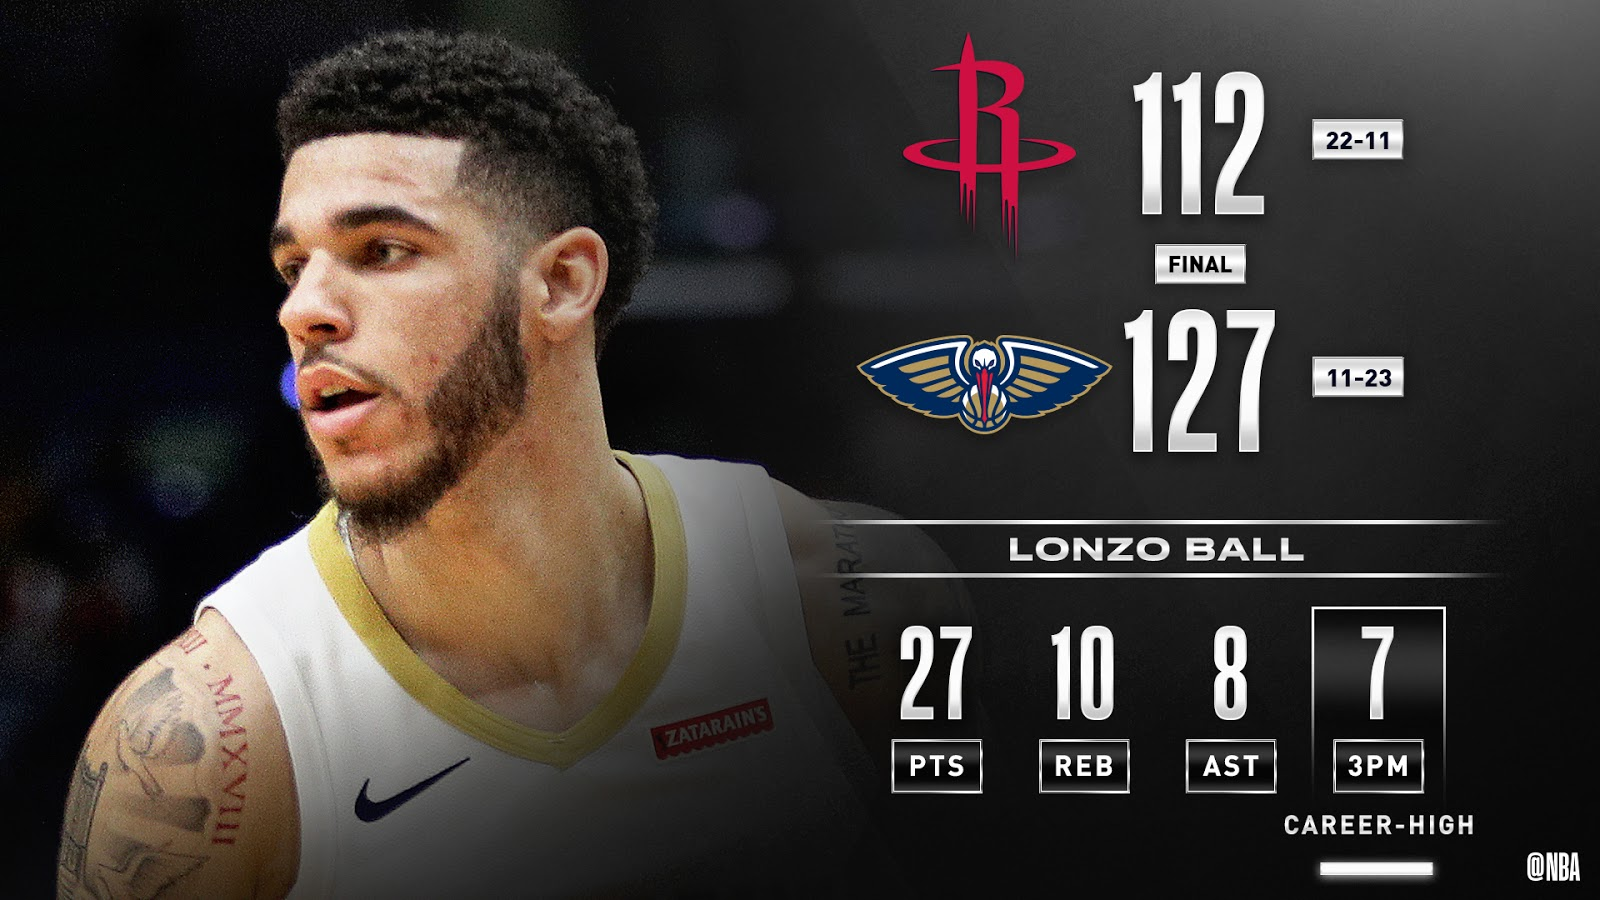 12 29 Game Day Lakers Vs Mavs Rockets Vs Pelicans